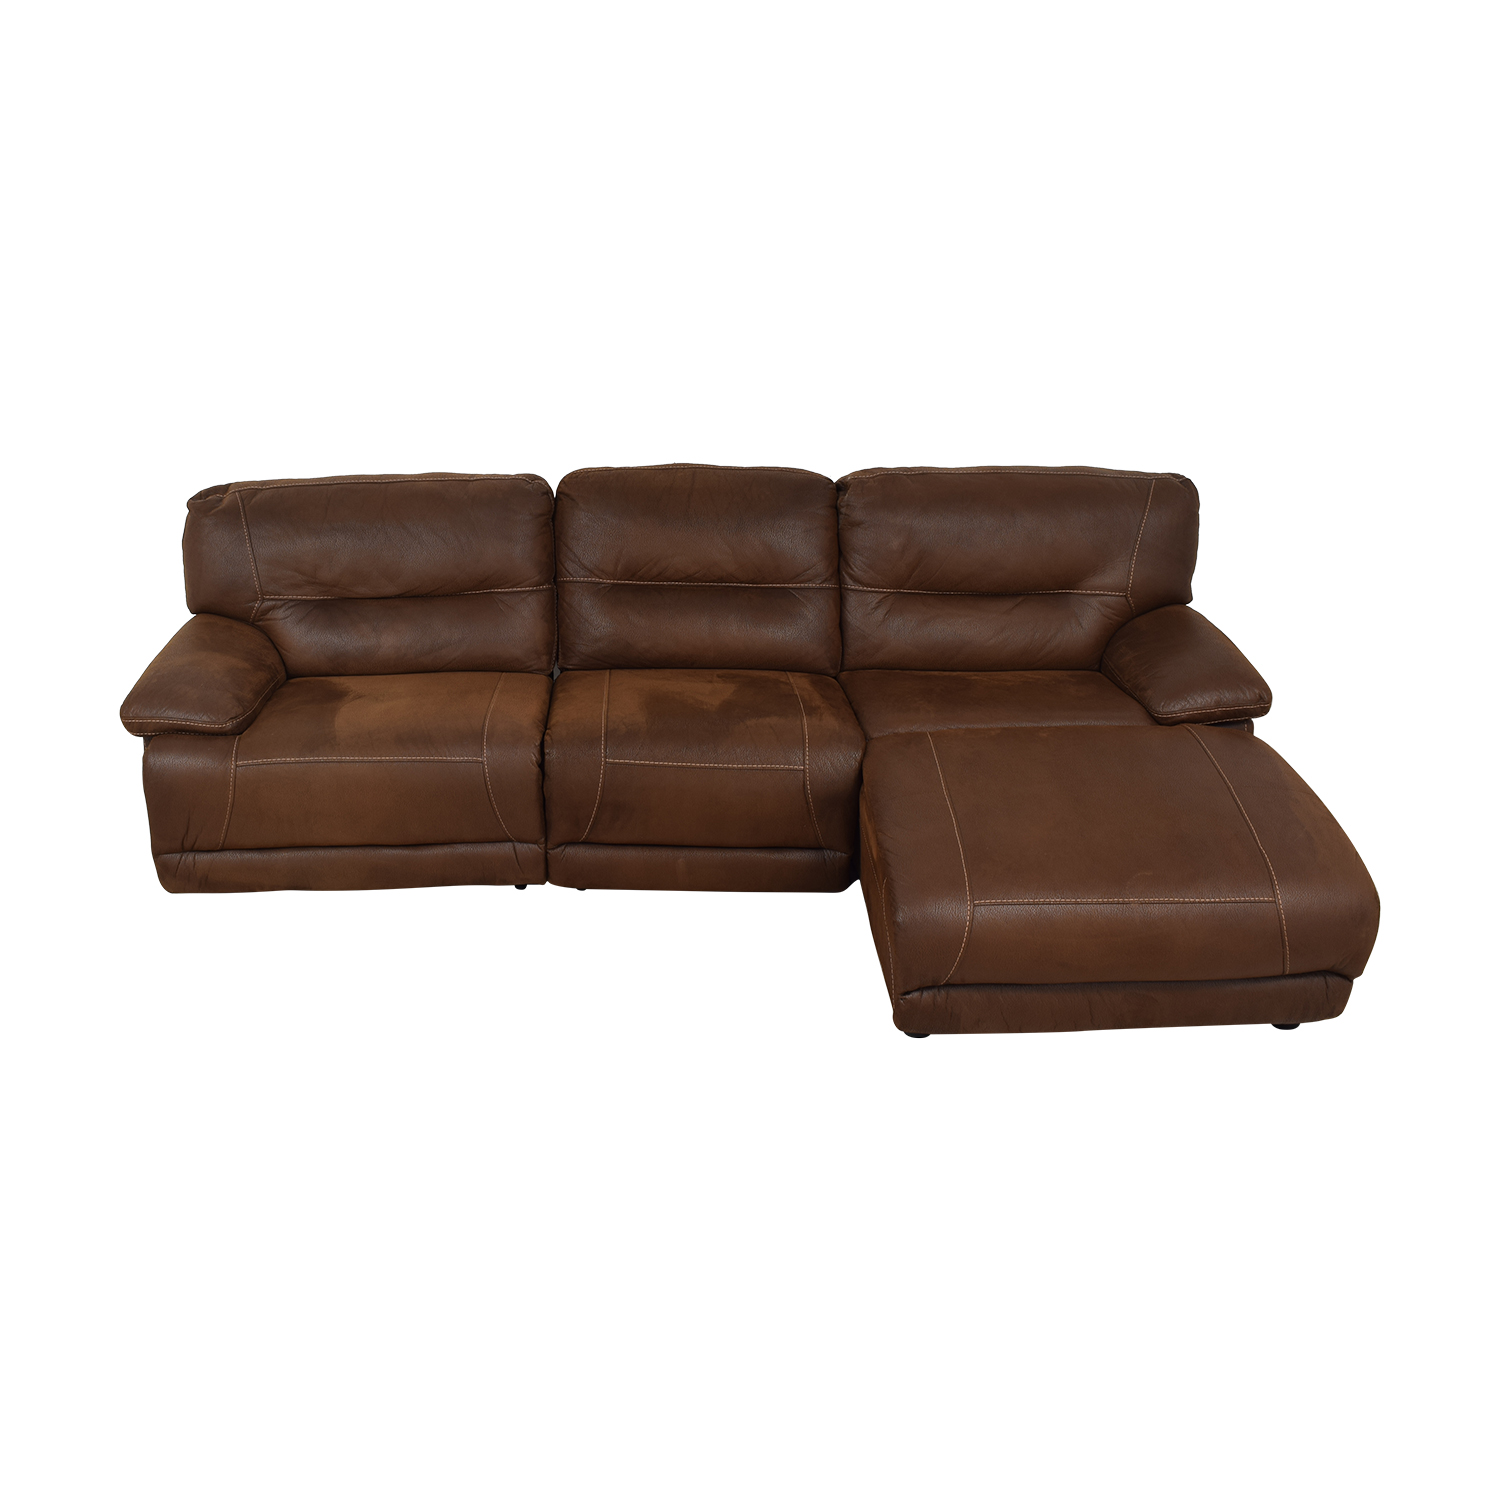 Bob's Discount Furniture Bob's Discount Furniture Brown Tufted Chaise Sectional Recliner brown